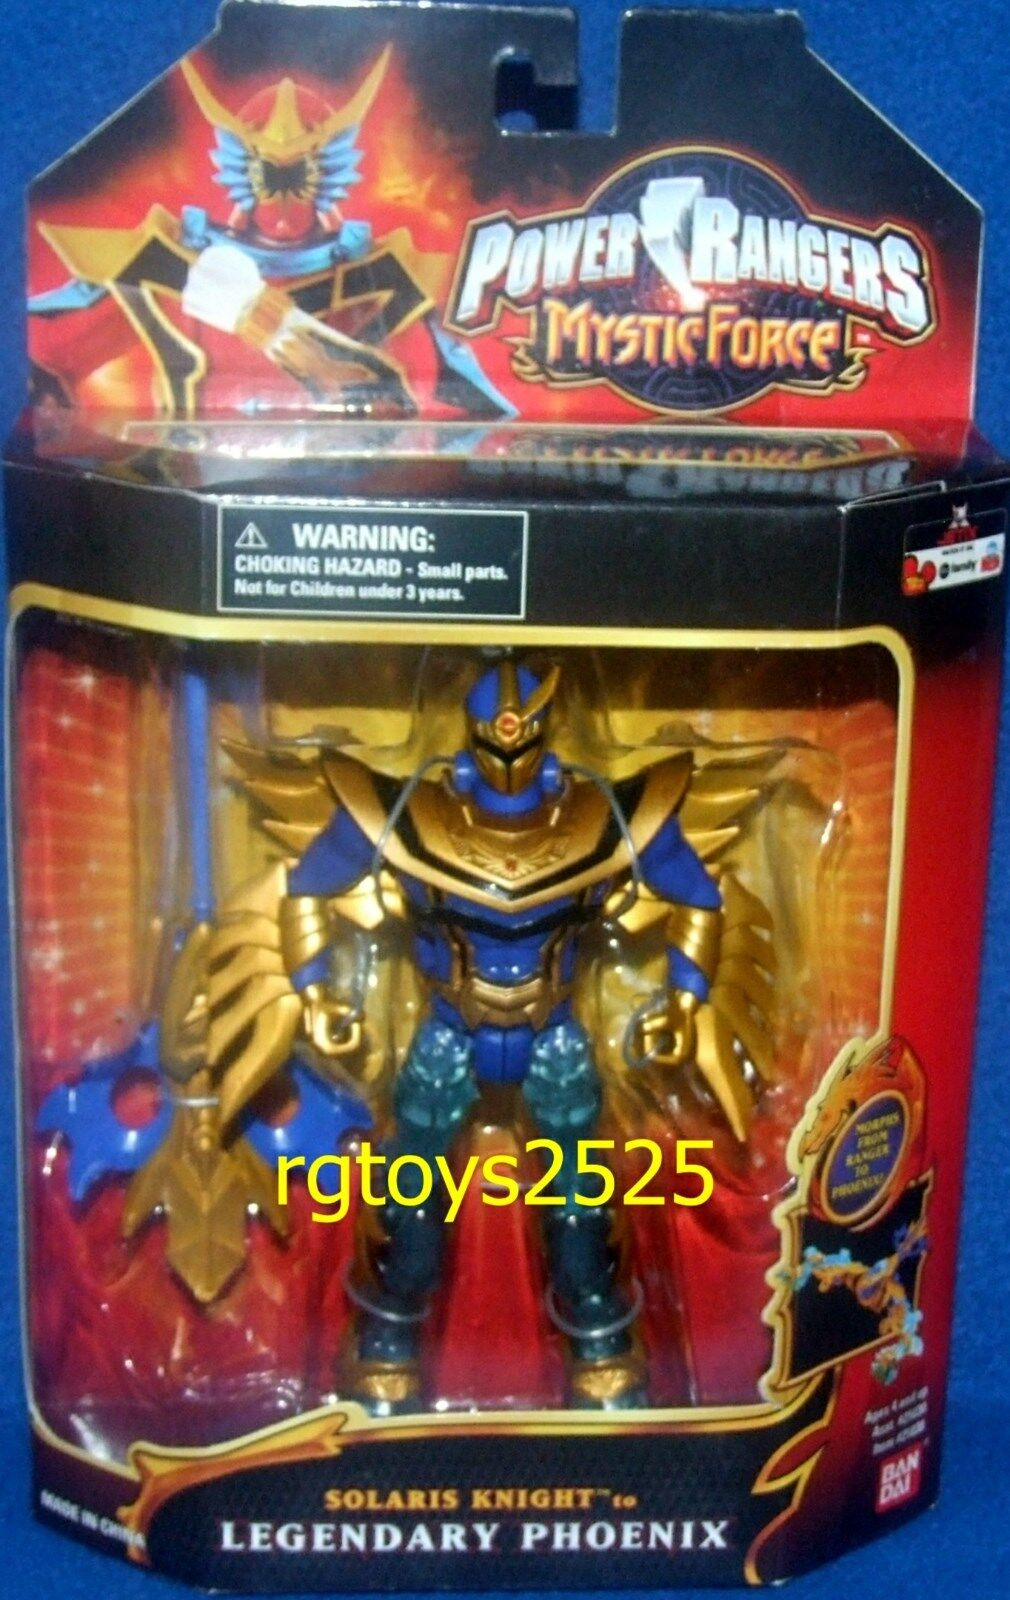 Power Rangers Mystic Force Solaris Knight a legendario Phoenix nuevo sello de fábrica